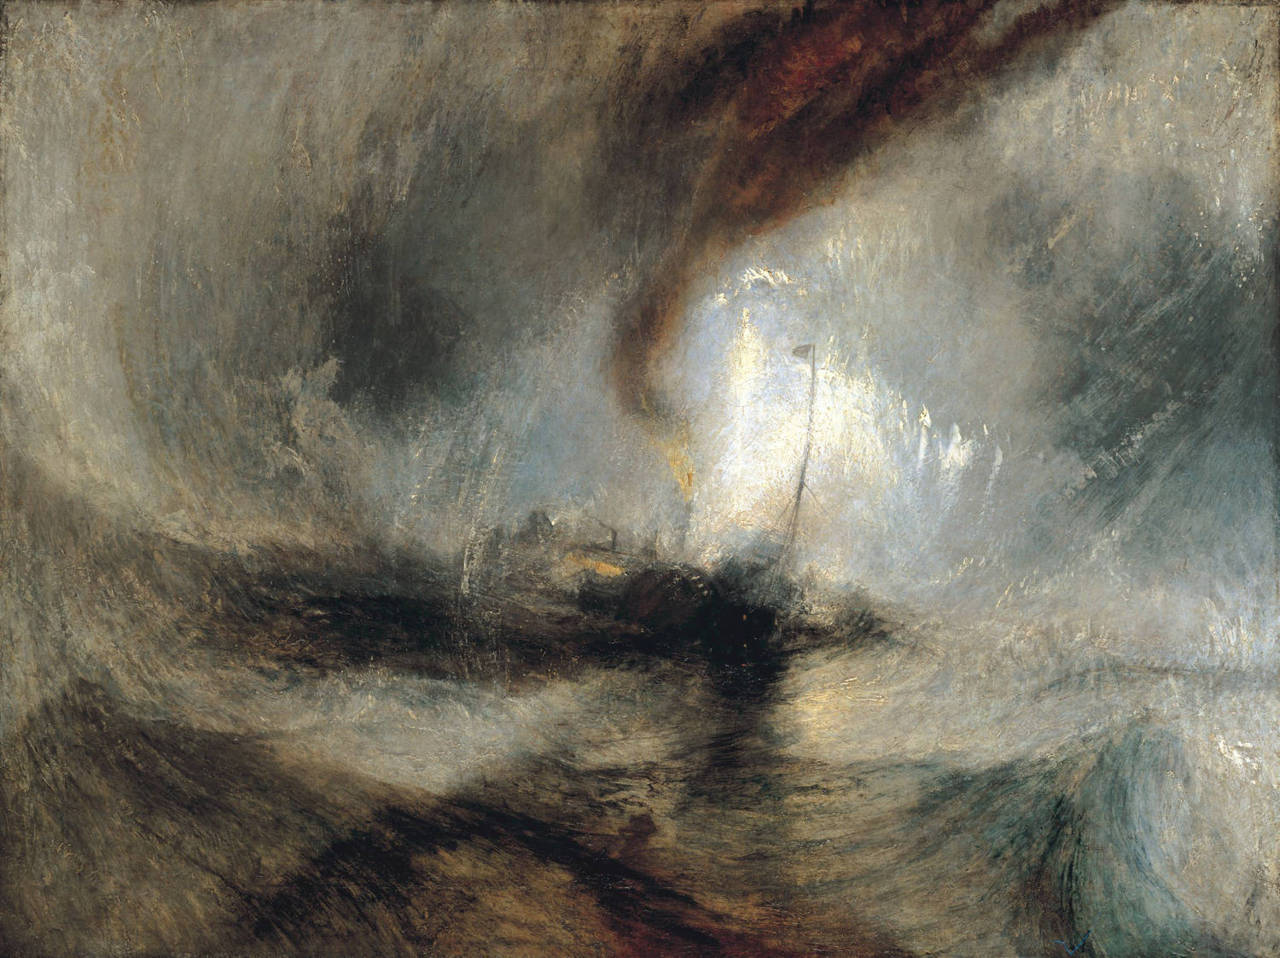 J. M. W. Turner, Snowstorm Oil on canvas 1842